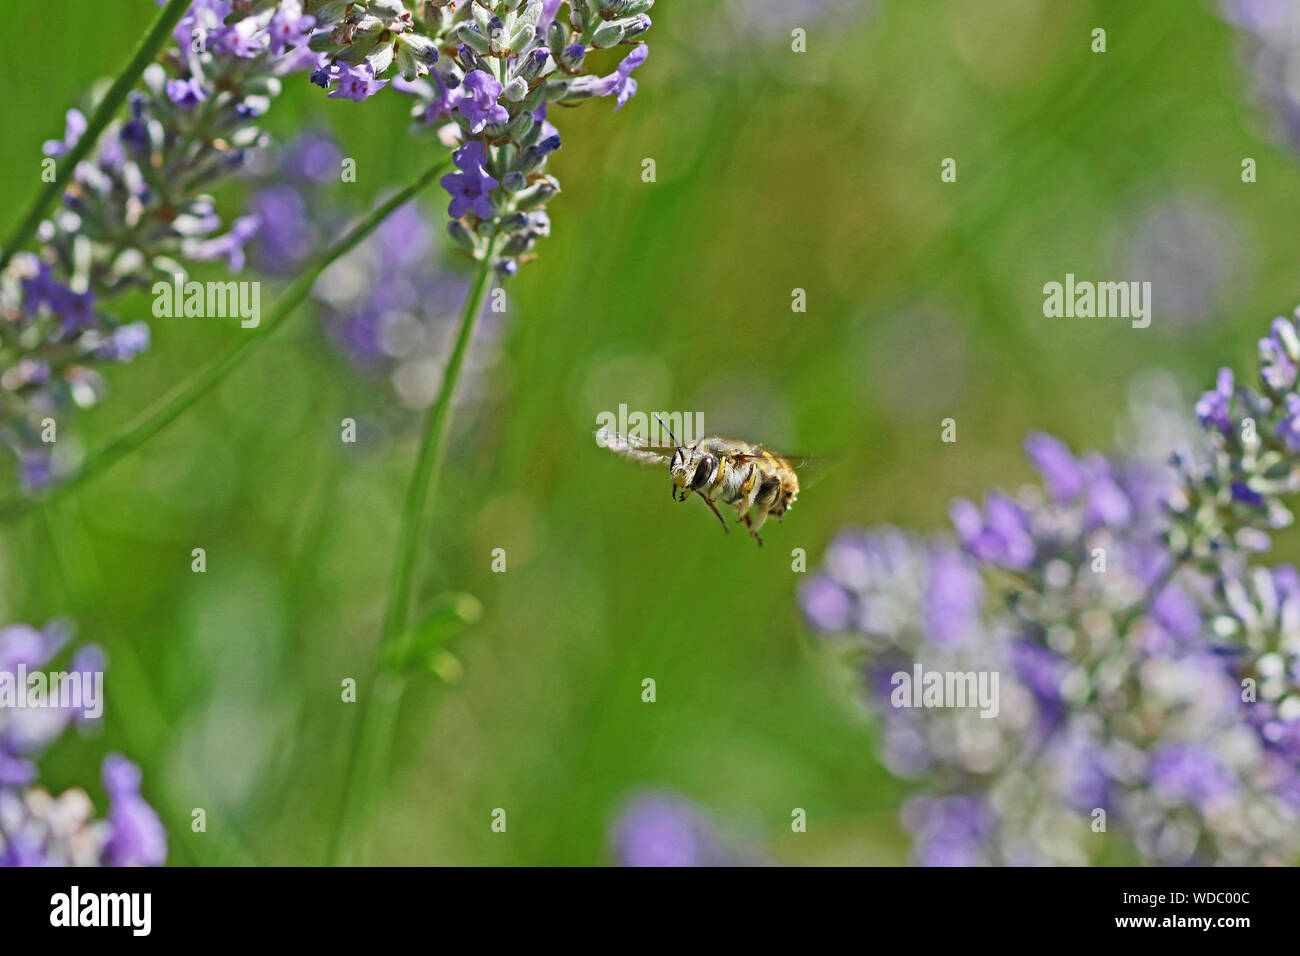 furry wool carder bee in mid flight very close up Latin anthidium manicatum near a lavender bush in Italy Stock Photo